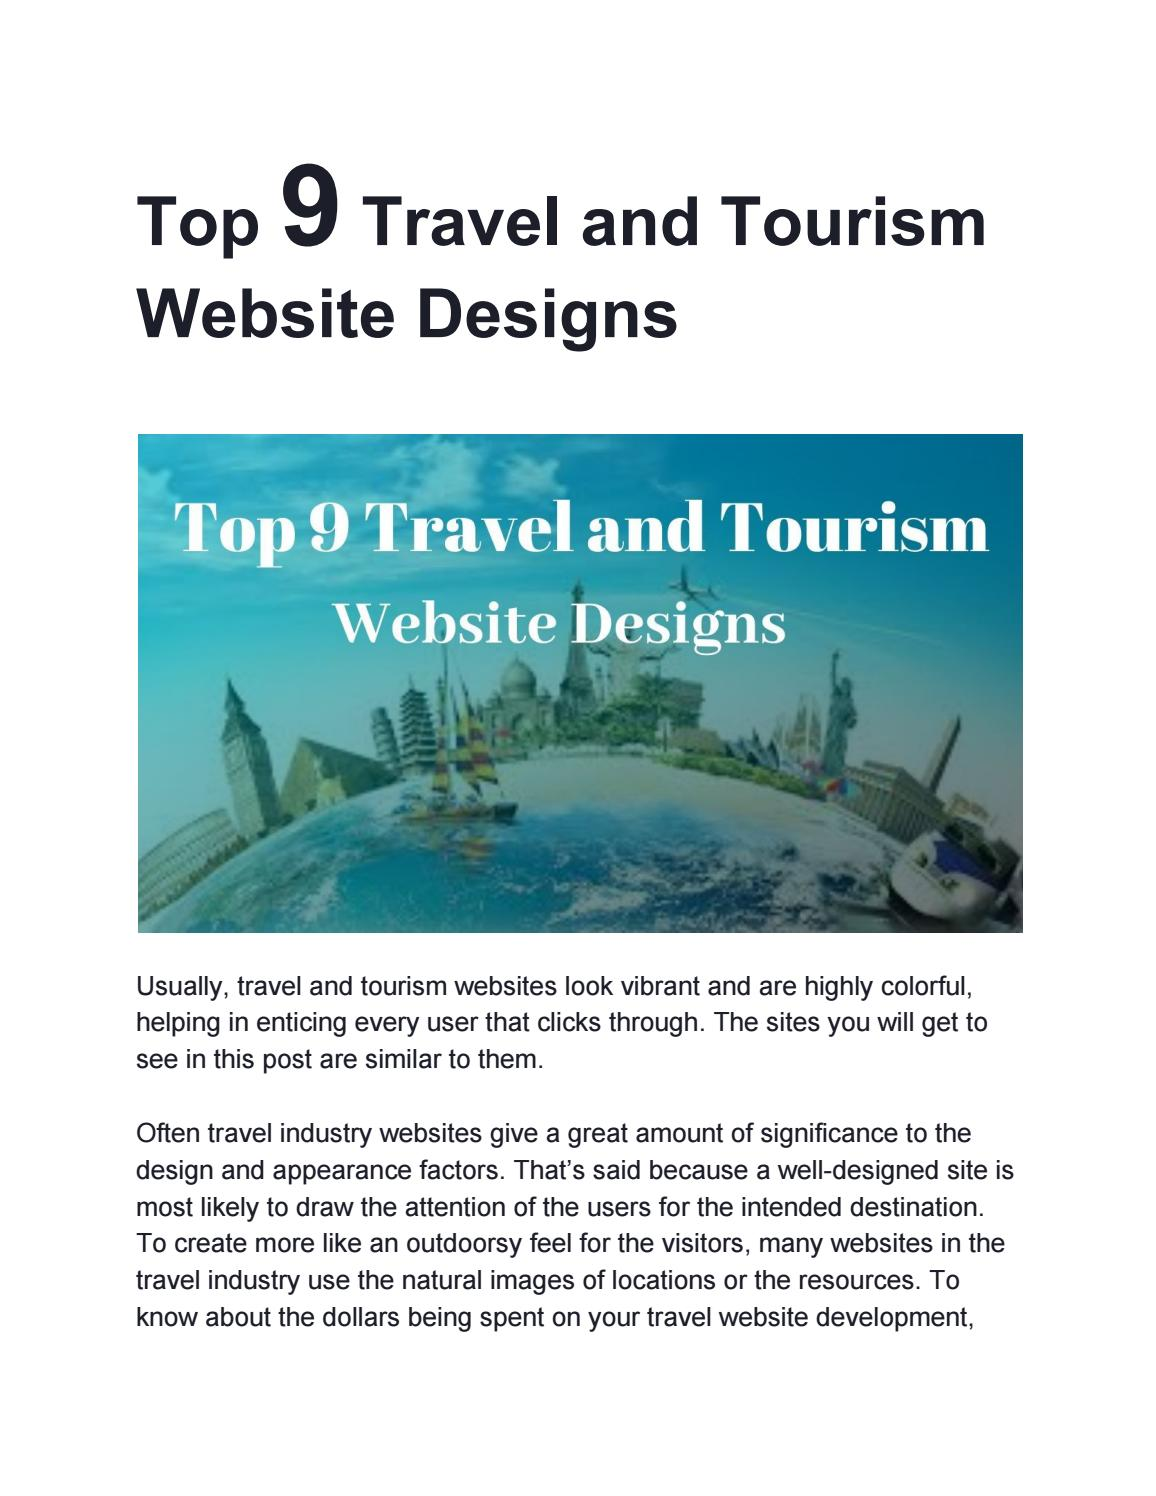 Top 9 Travel And Tourism Website Designs By Lawebsitedesign Issuu